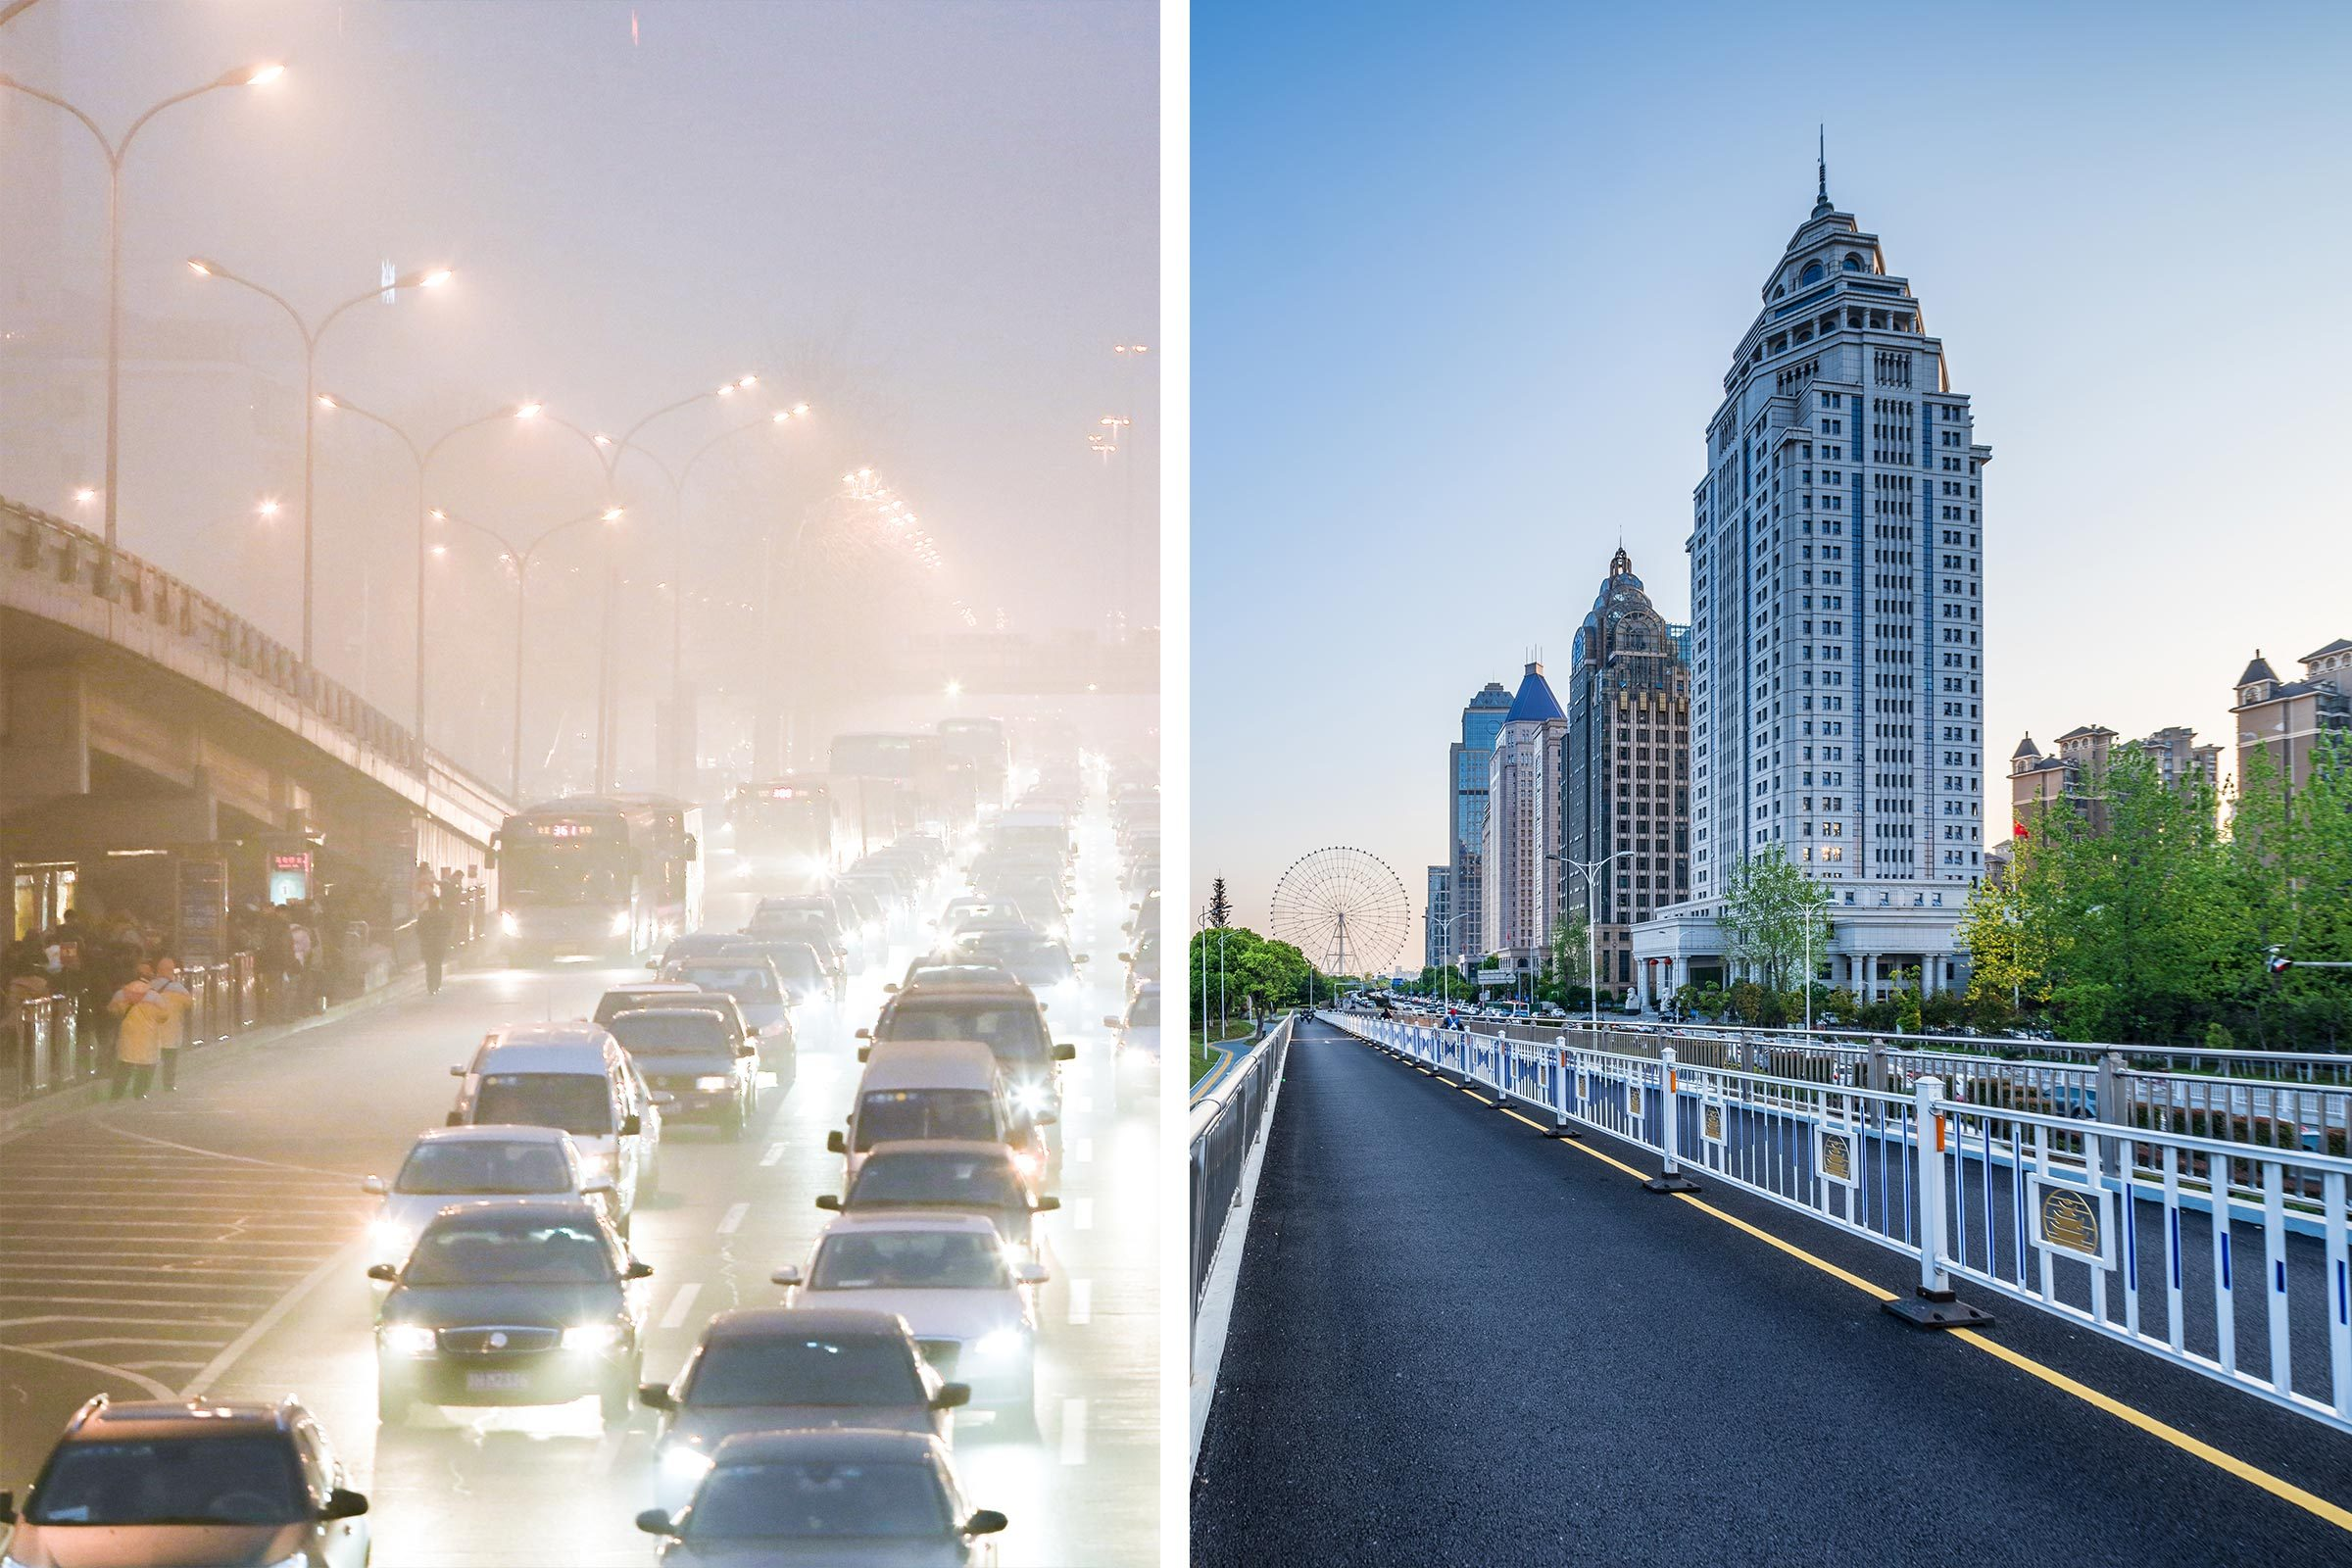 Before/After Beijing